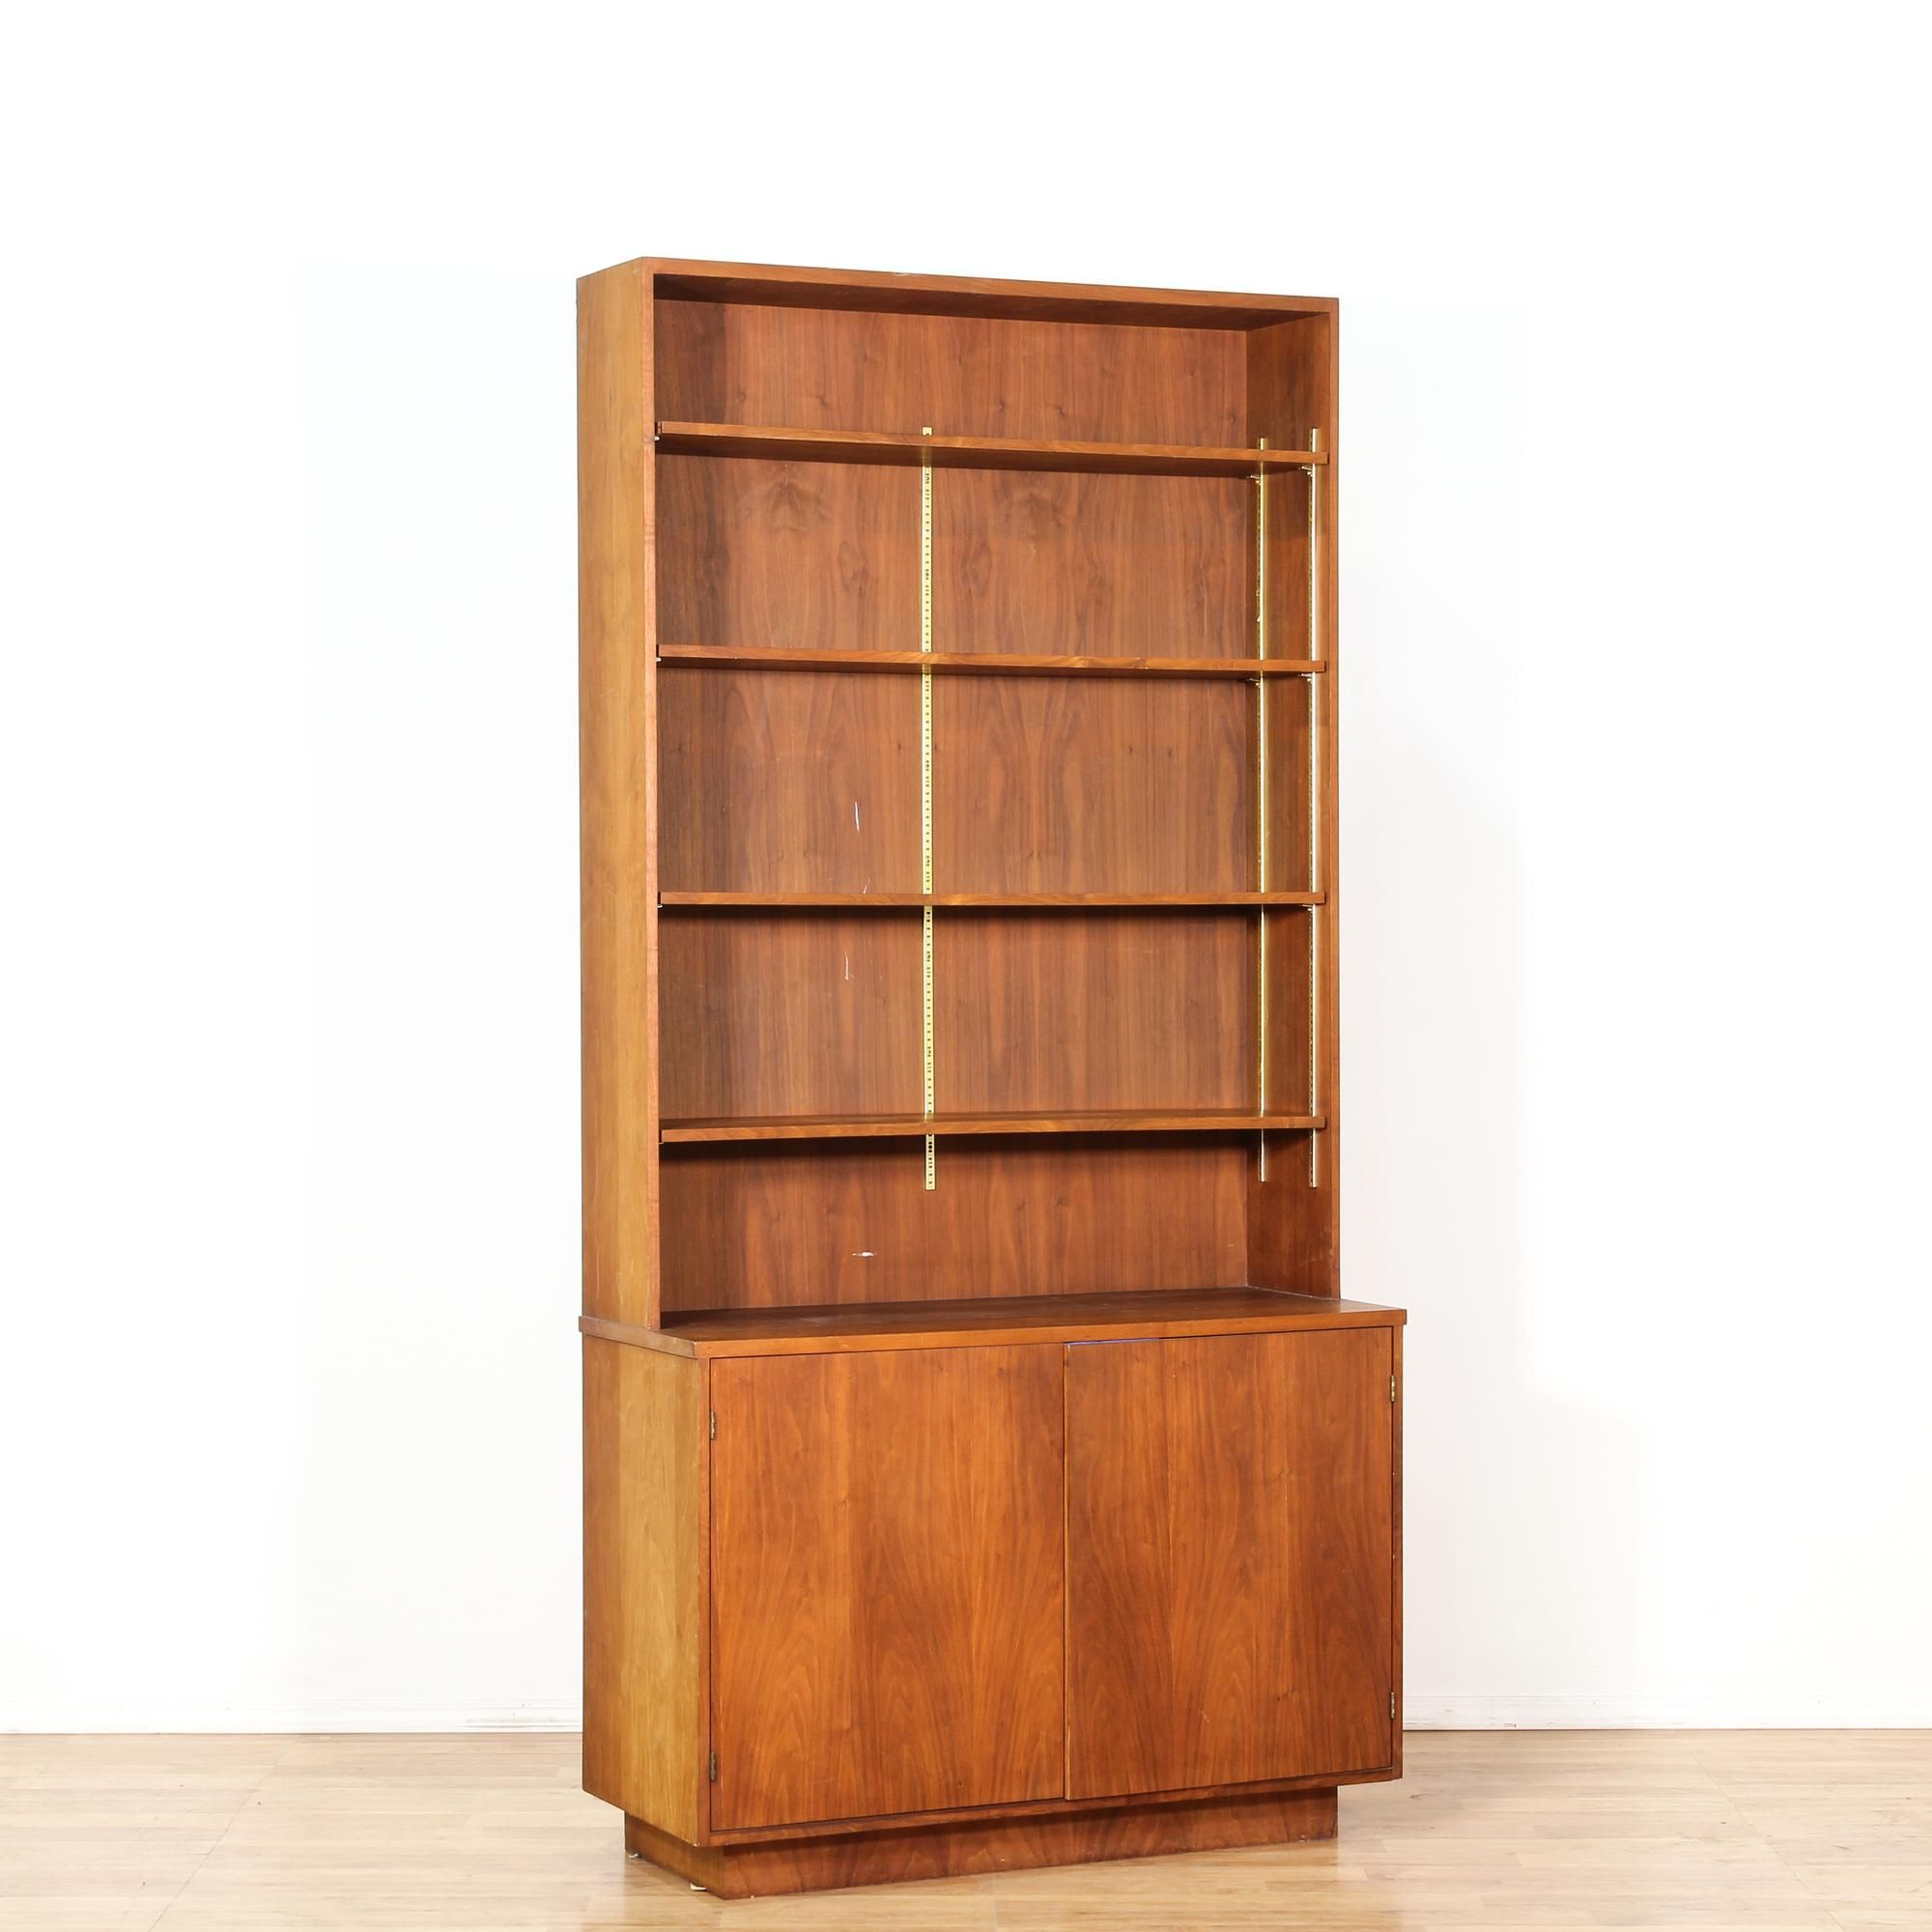 This danish modern style bookcase is featured in a solid wood with a